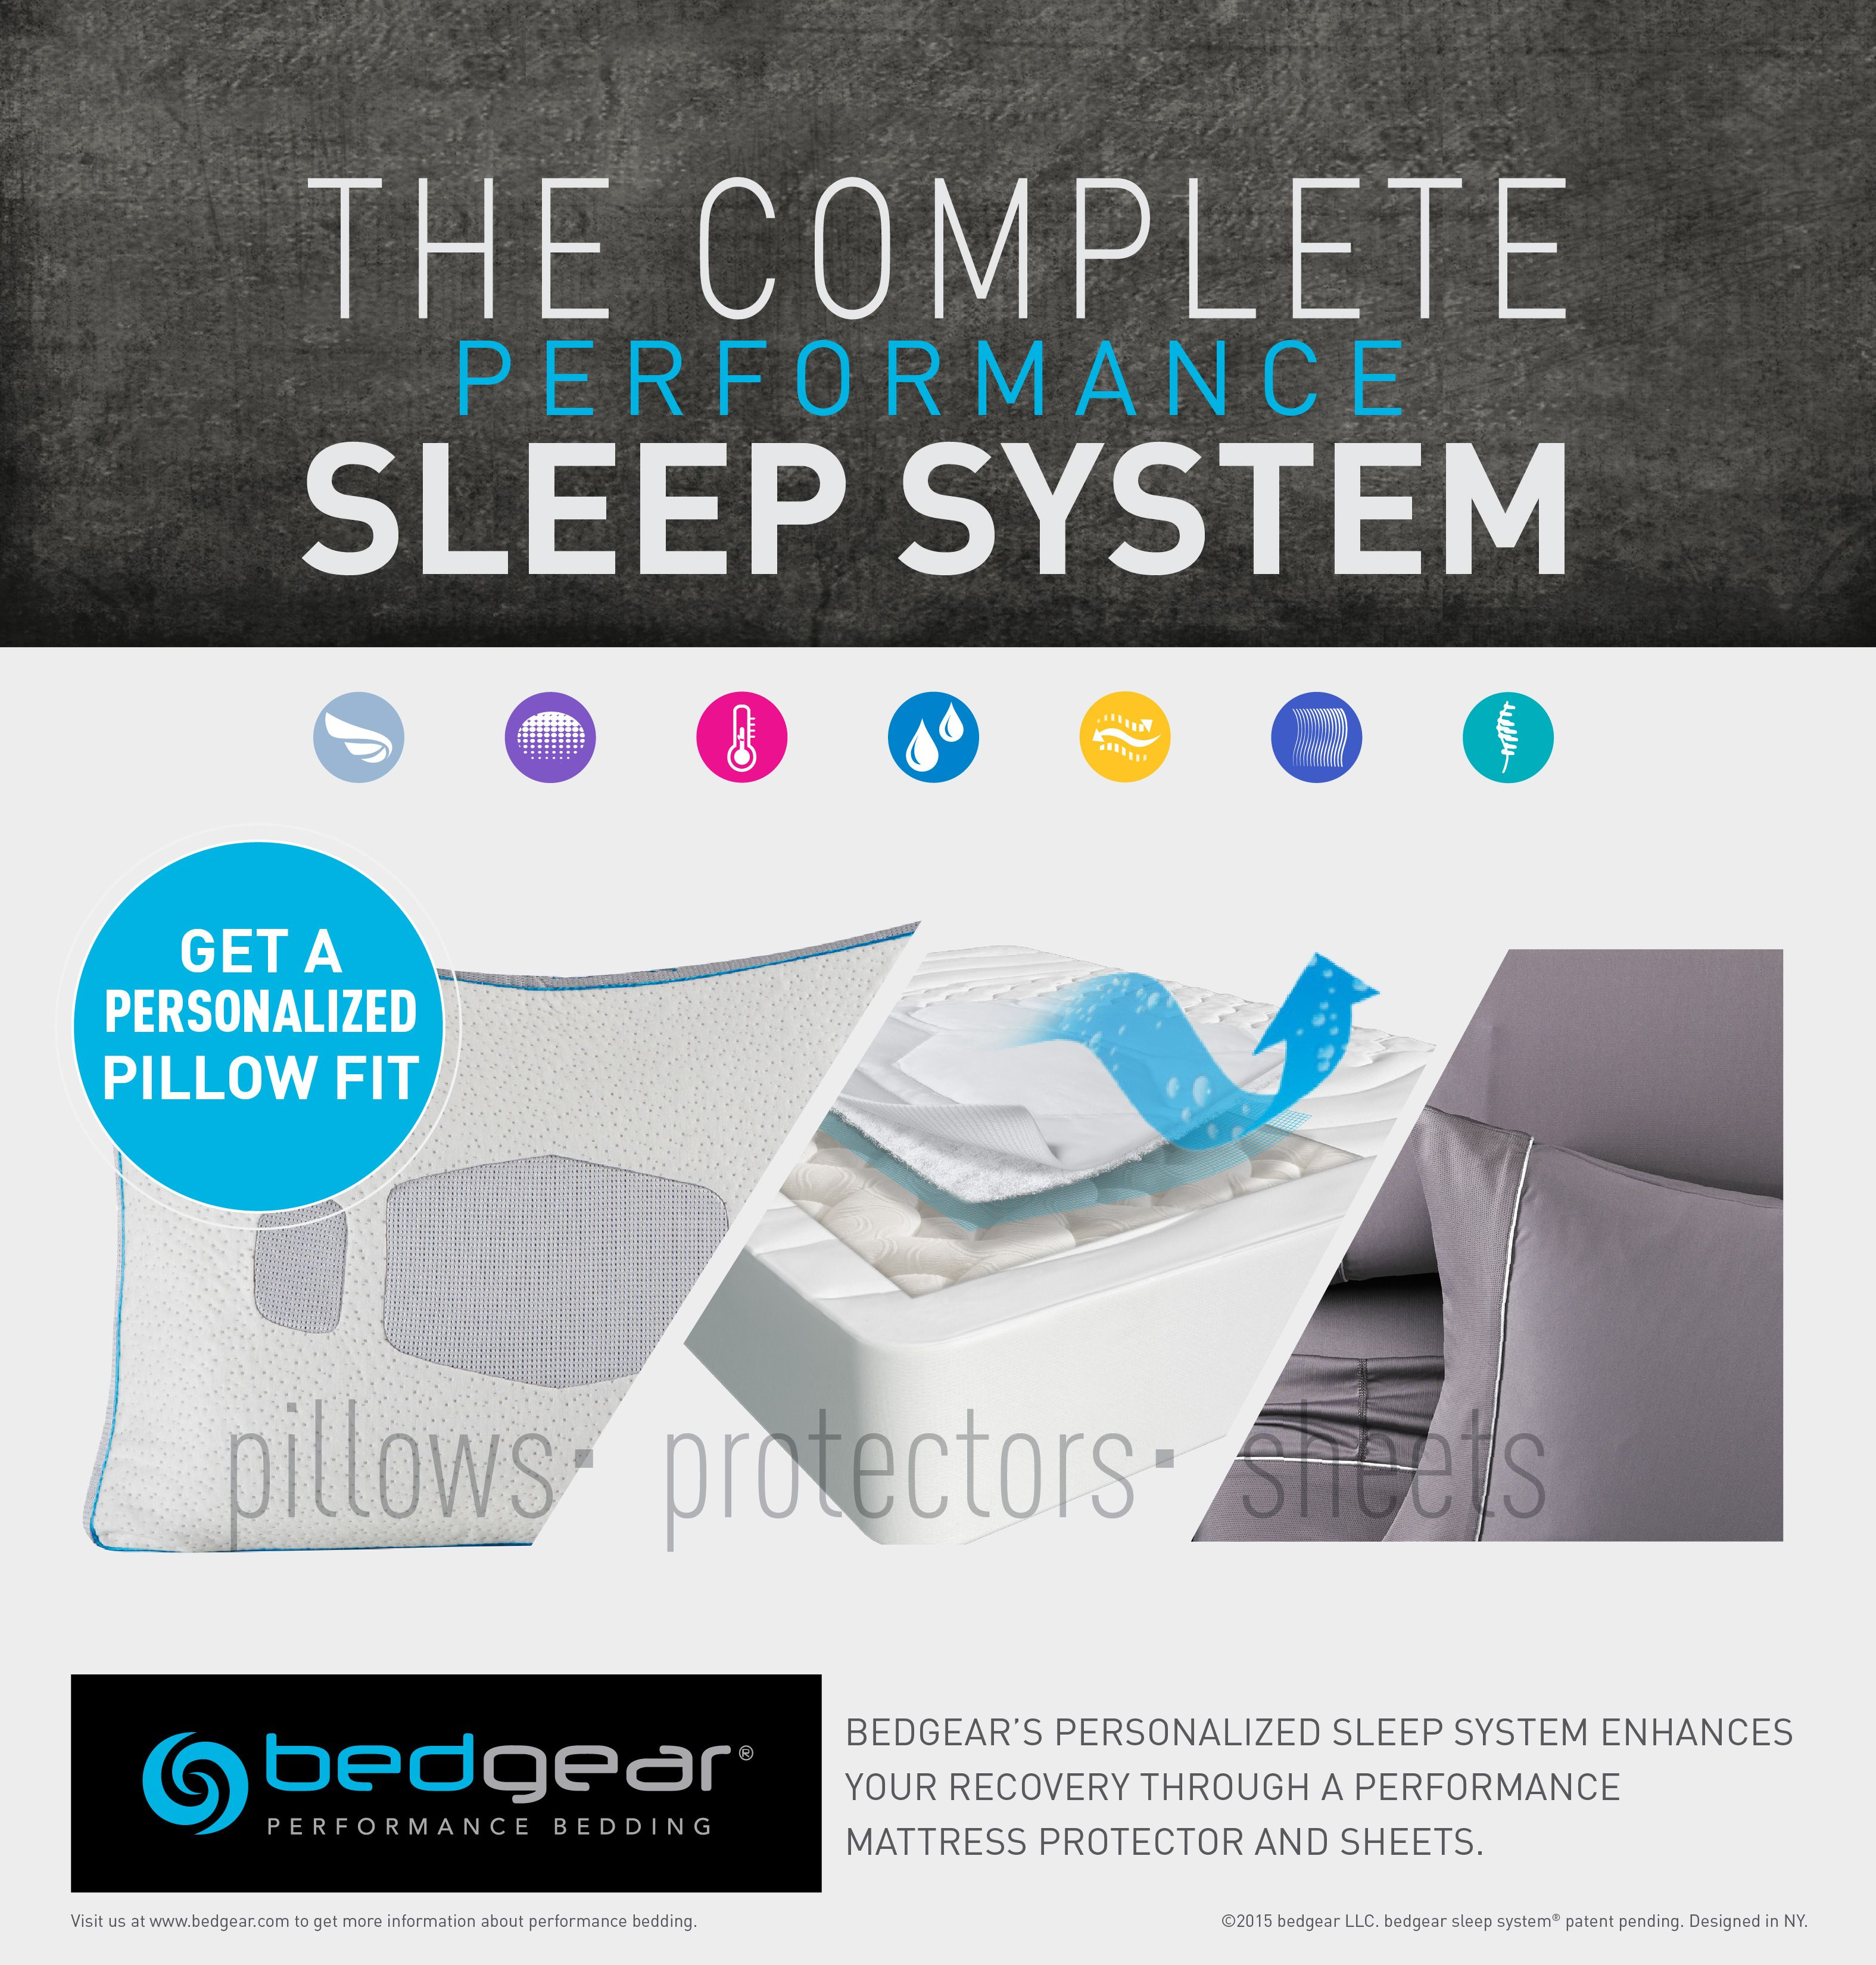 performance power bedgear the pillow of pinterest pin aspire pillows